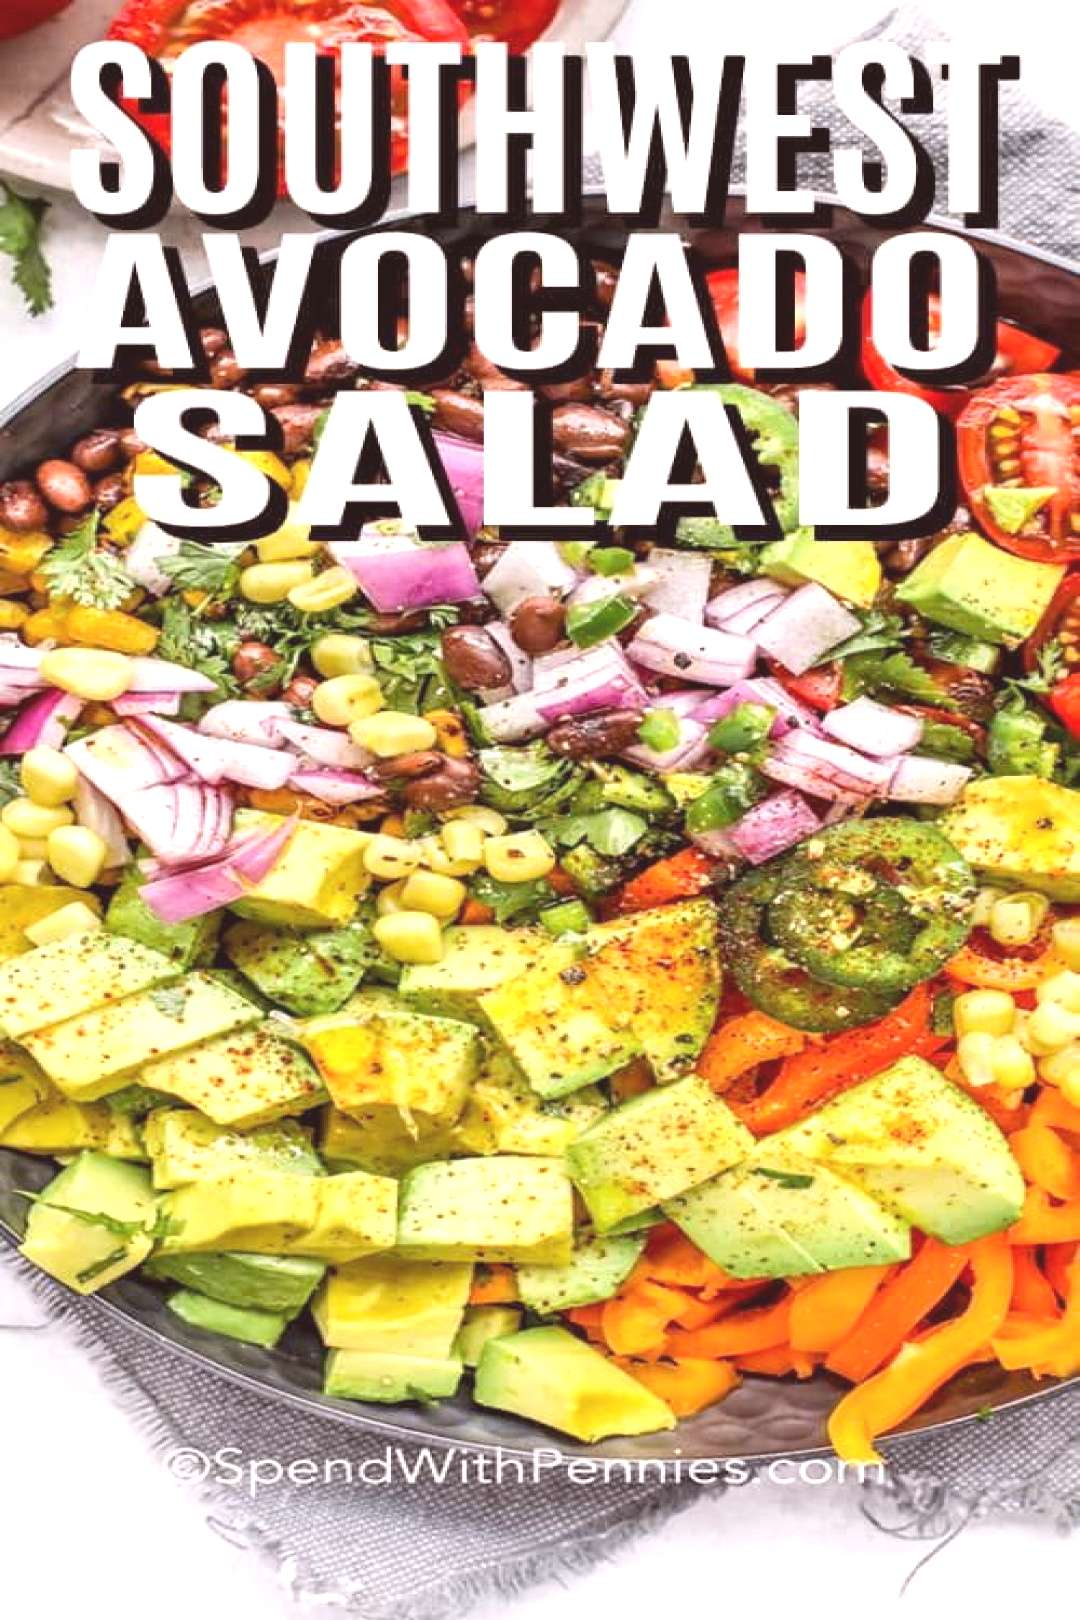 Southwest Avocado Salad amp Spend With Pennies Southwest Avocado Salad amp Spend With Pennies Spend W